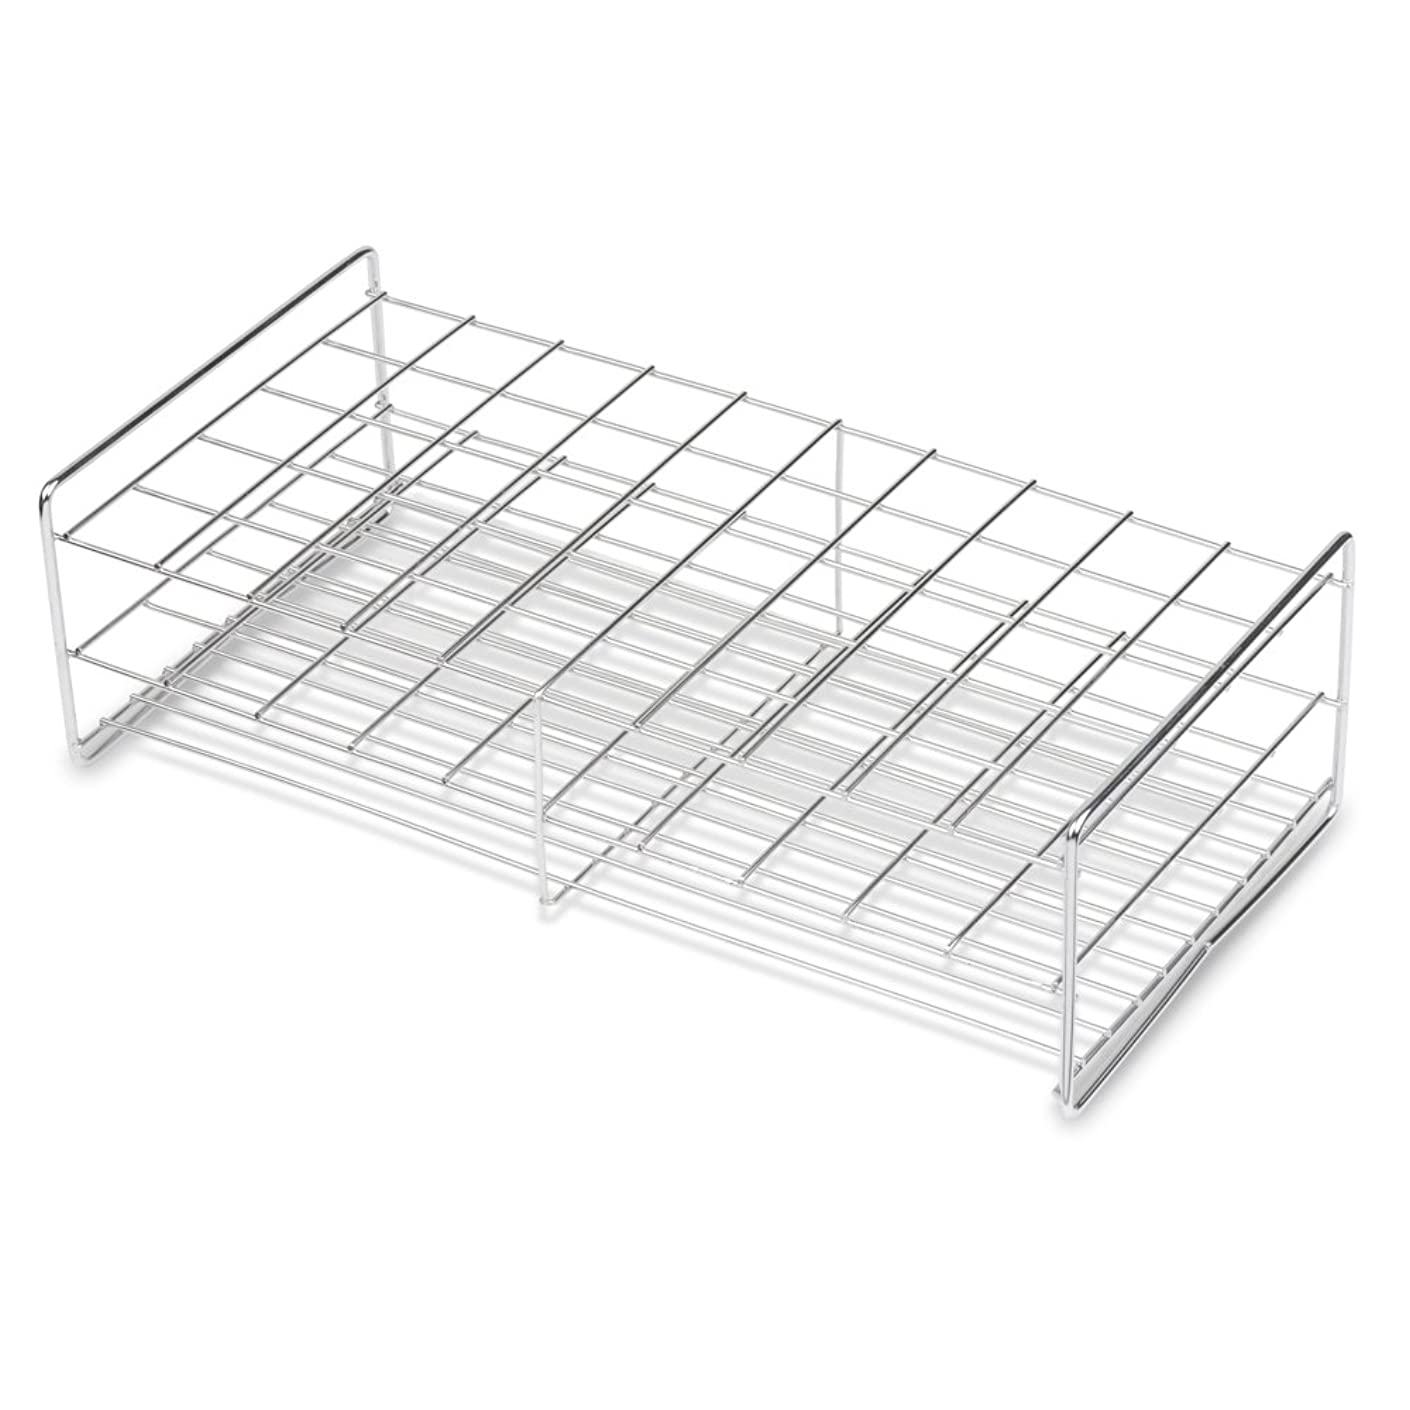 Stainless Steel Test Tube Rack, 30mm, 50 Place, Wire Constructed, Handles, Karter Scientific 235F3 (Single)